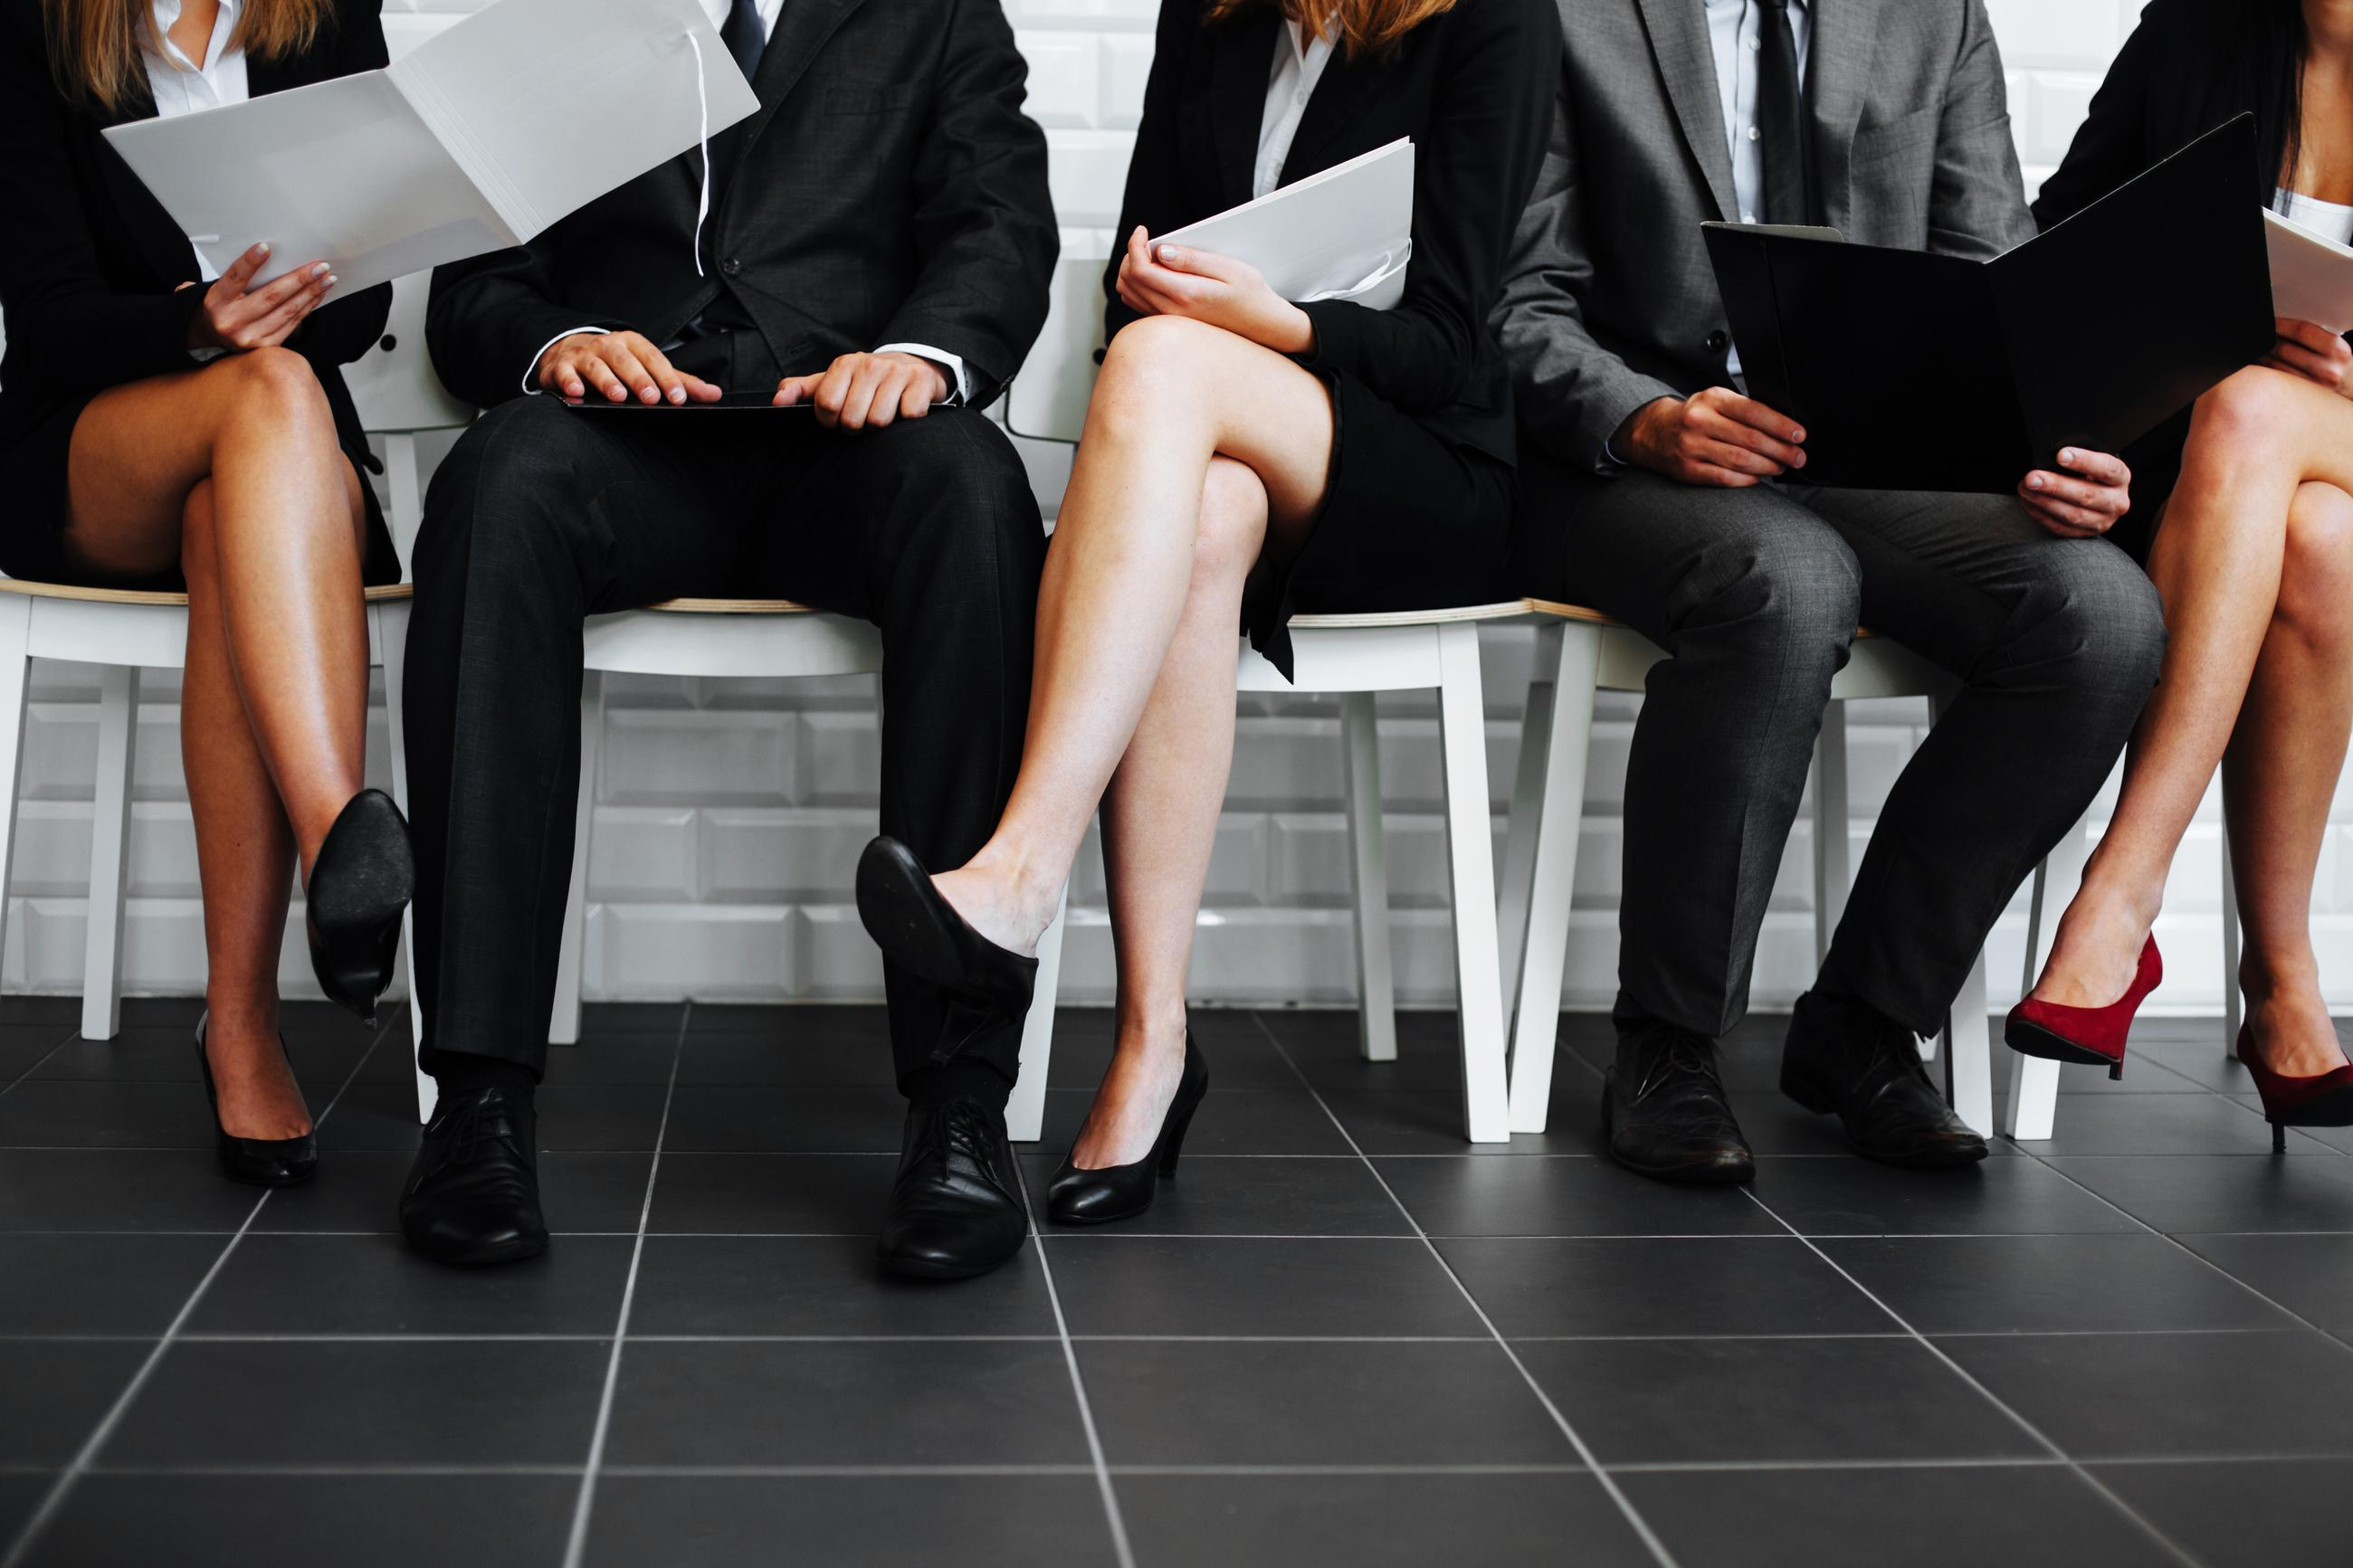 How Every Part of the Hiring Process Favors Elites